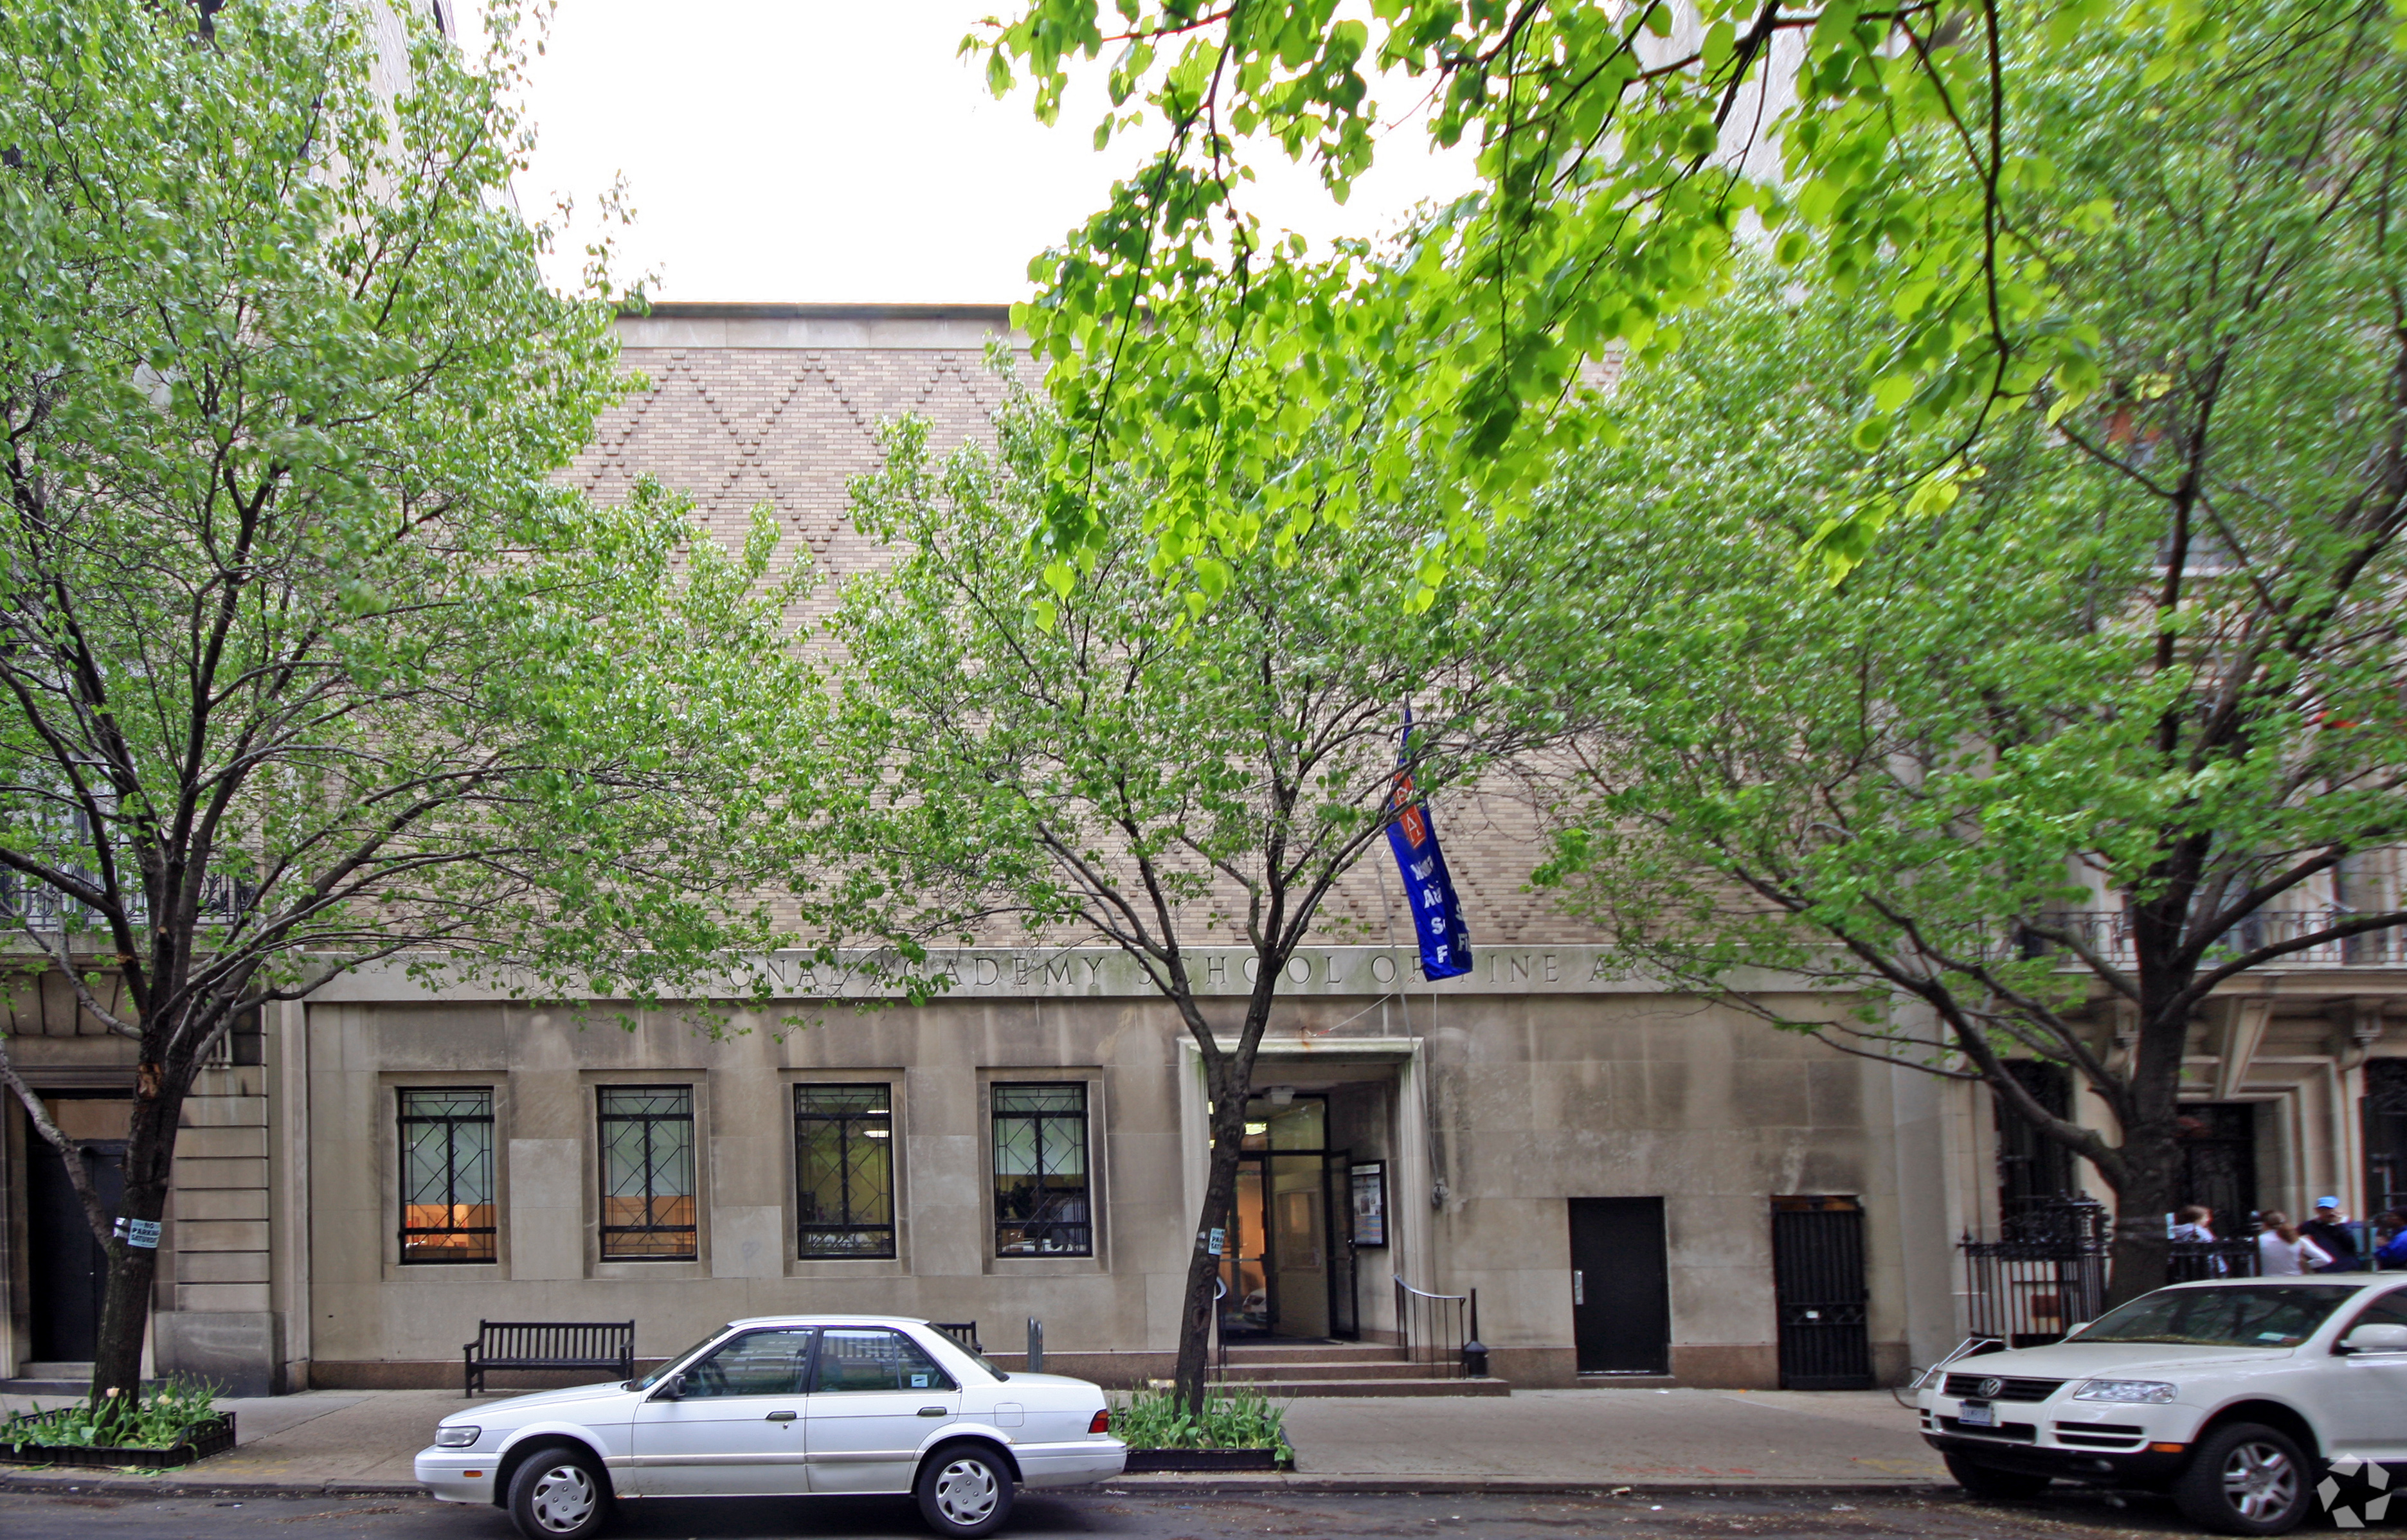 National Academy of Design,1083 5th Avenue,New York City,NYC,United States,7